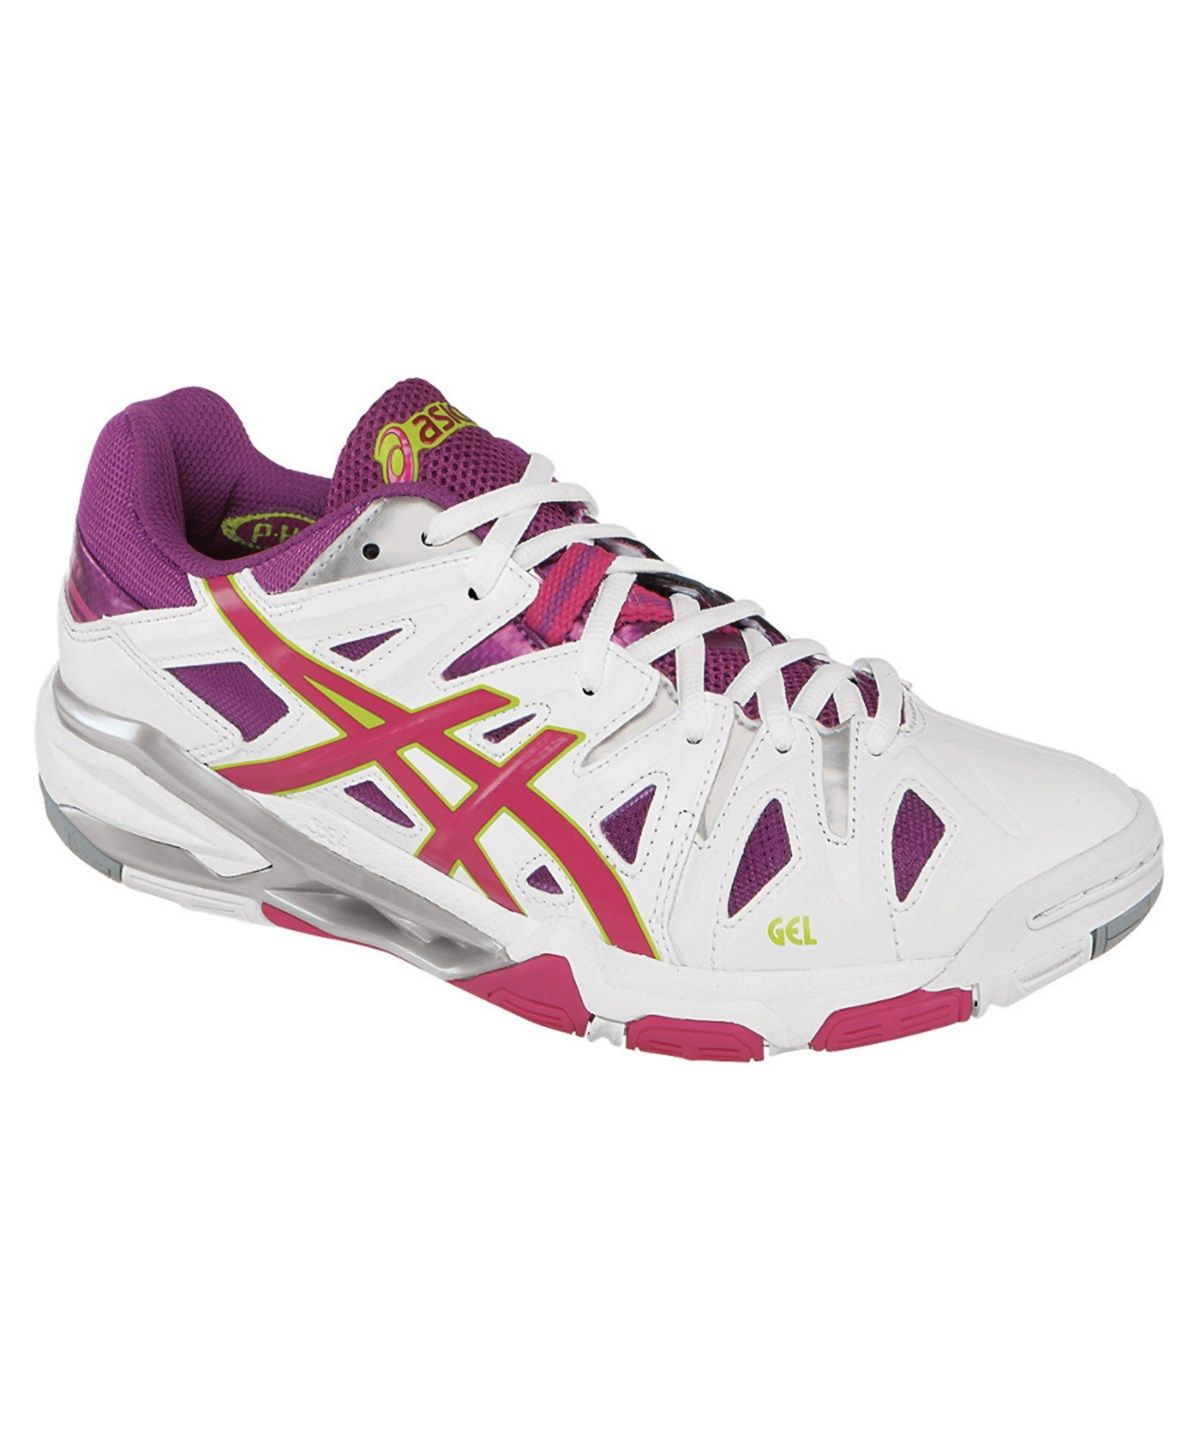 women's volleyball shoes - HD 1200×1440